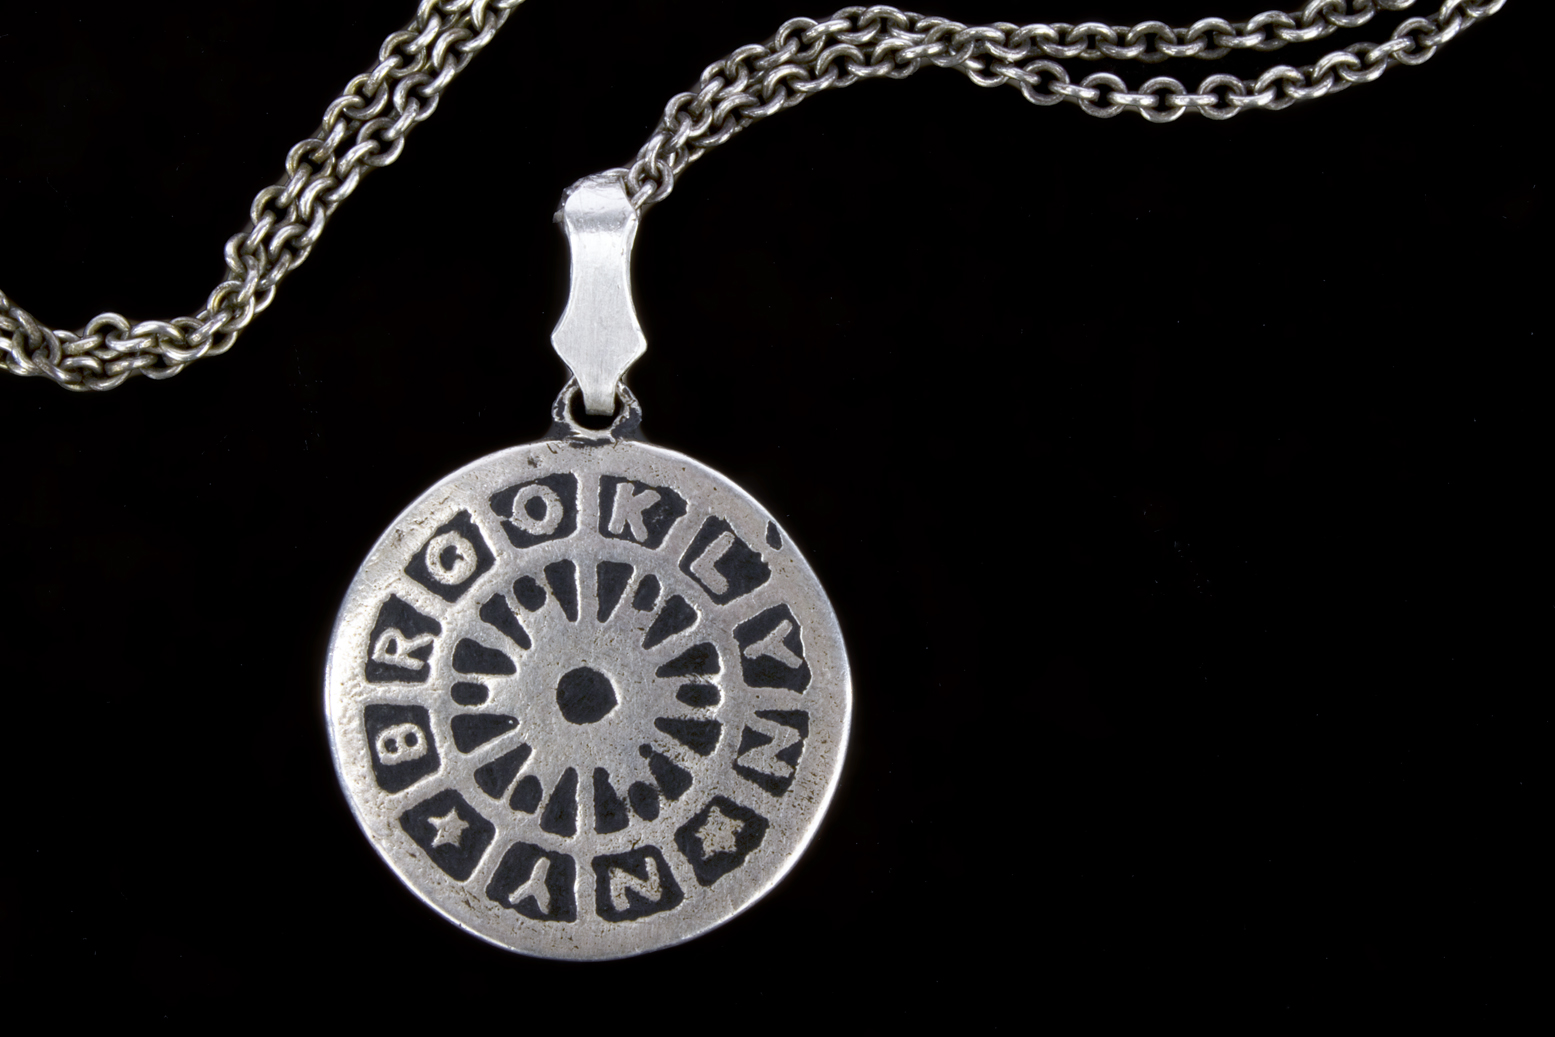 manhole cover_silver necklace_1.jpg